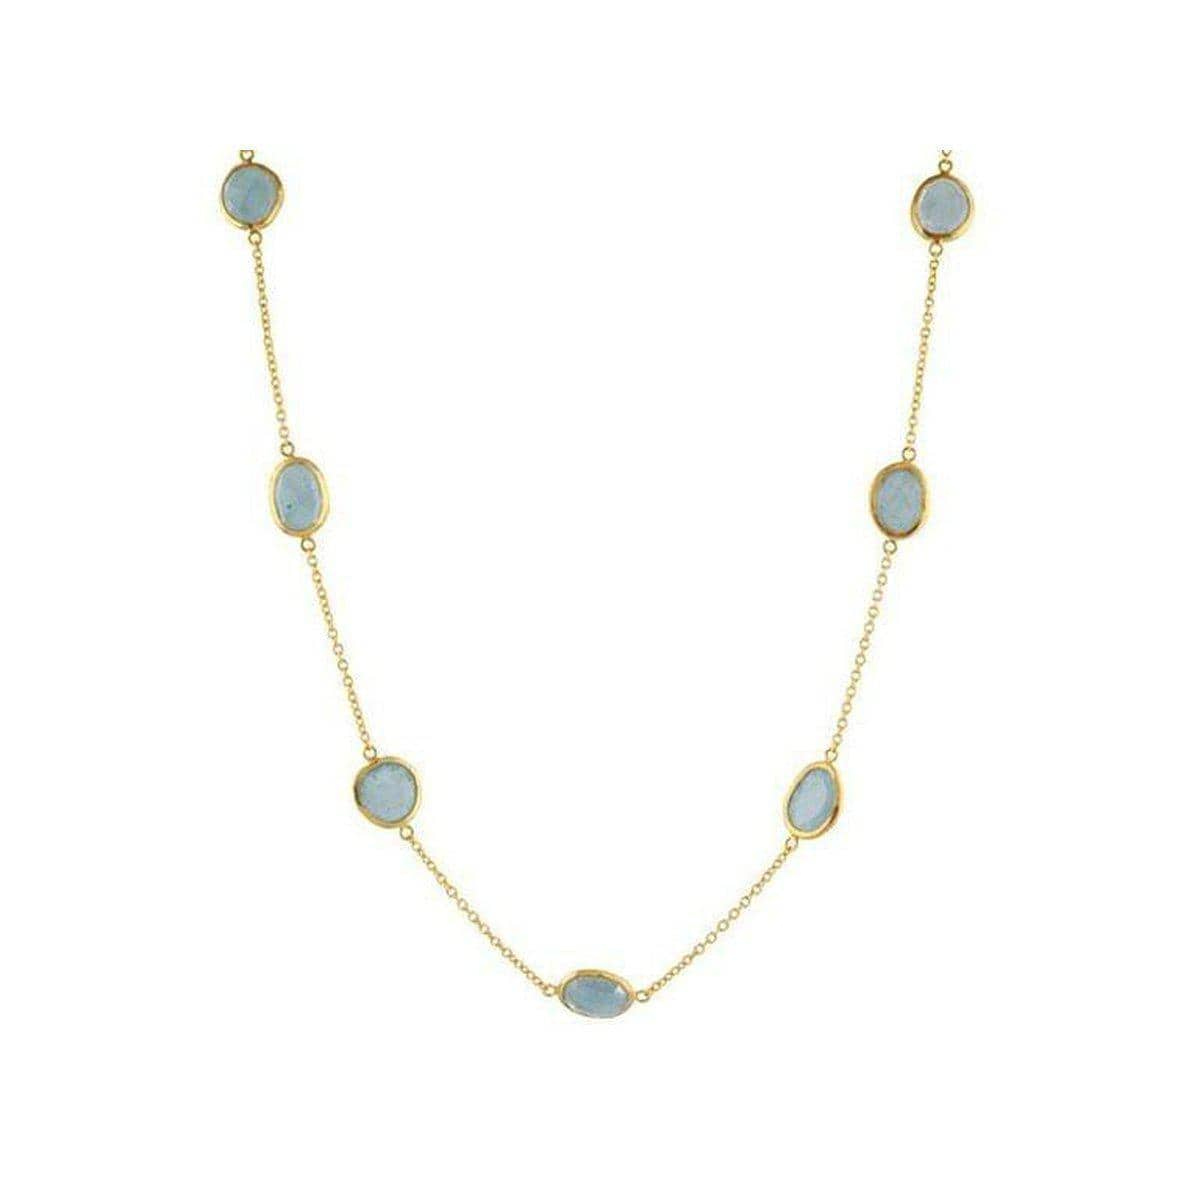 Elements 24K Gold Aquamarine Necklace - N-U20701-AQ-GURHAN-Renee Taylor Gallery